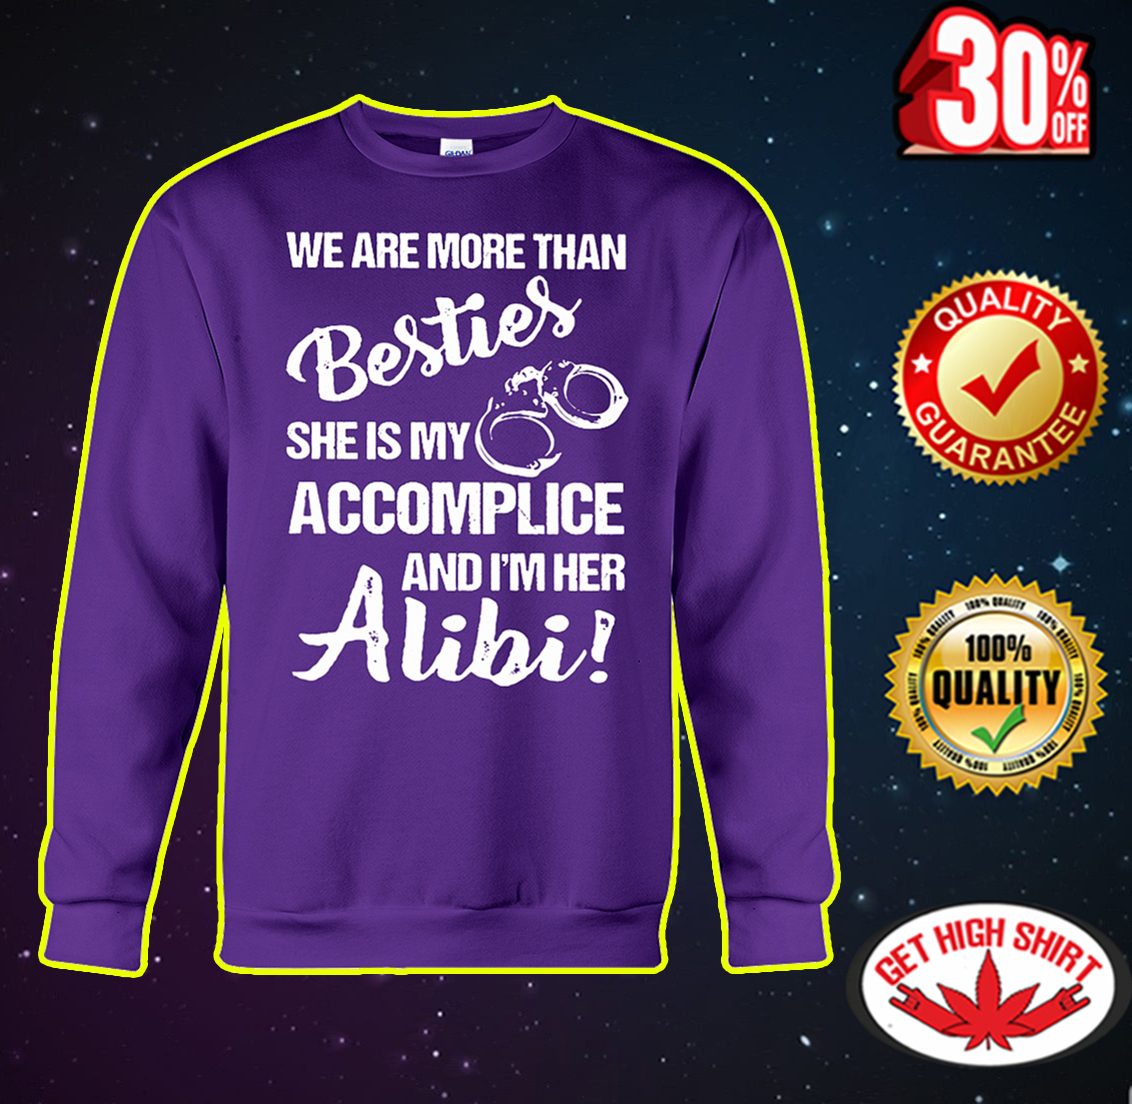 We are more than besties she is my accomplice and I'm her alibi sweatshirt